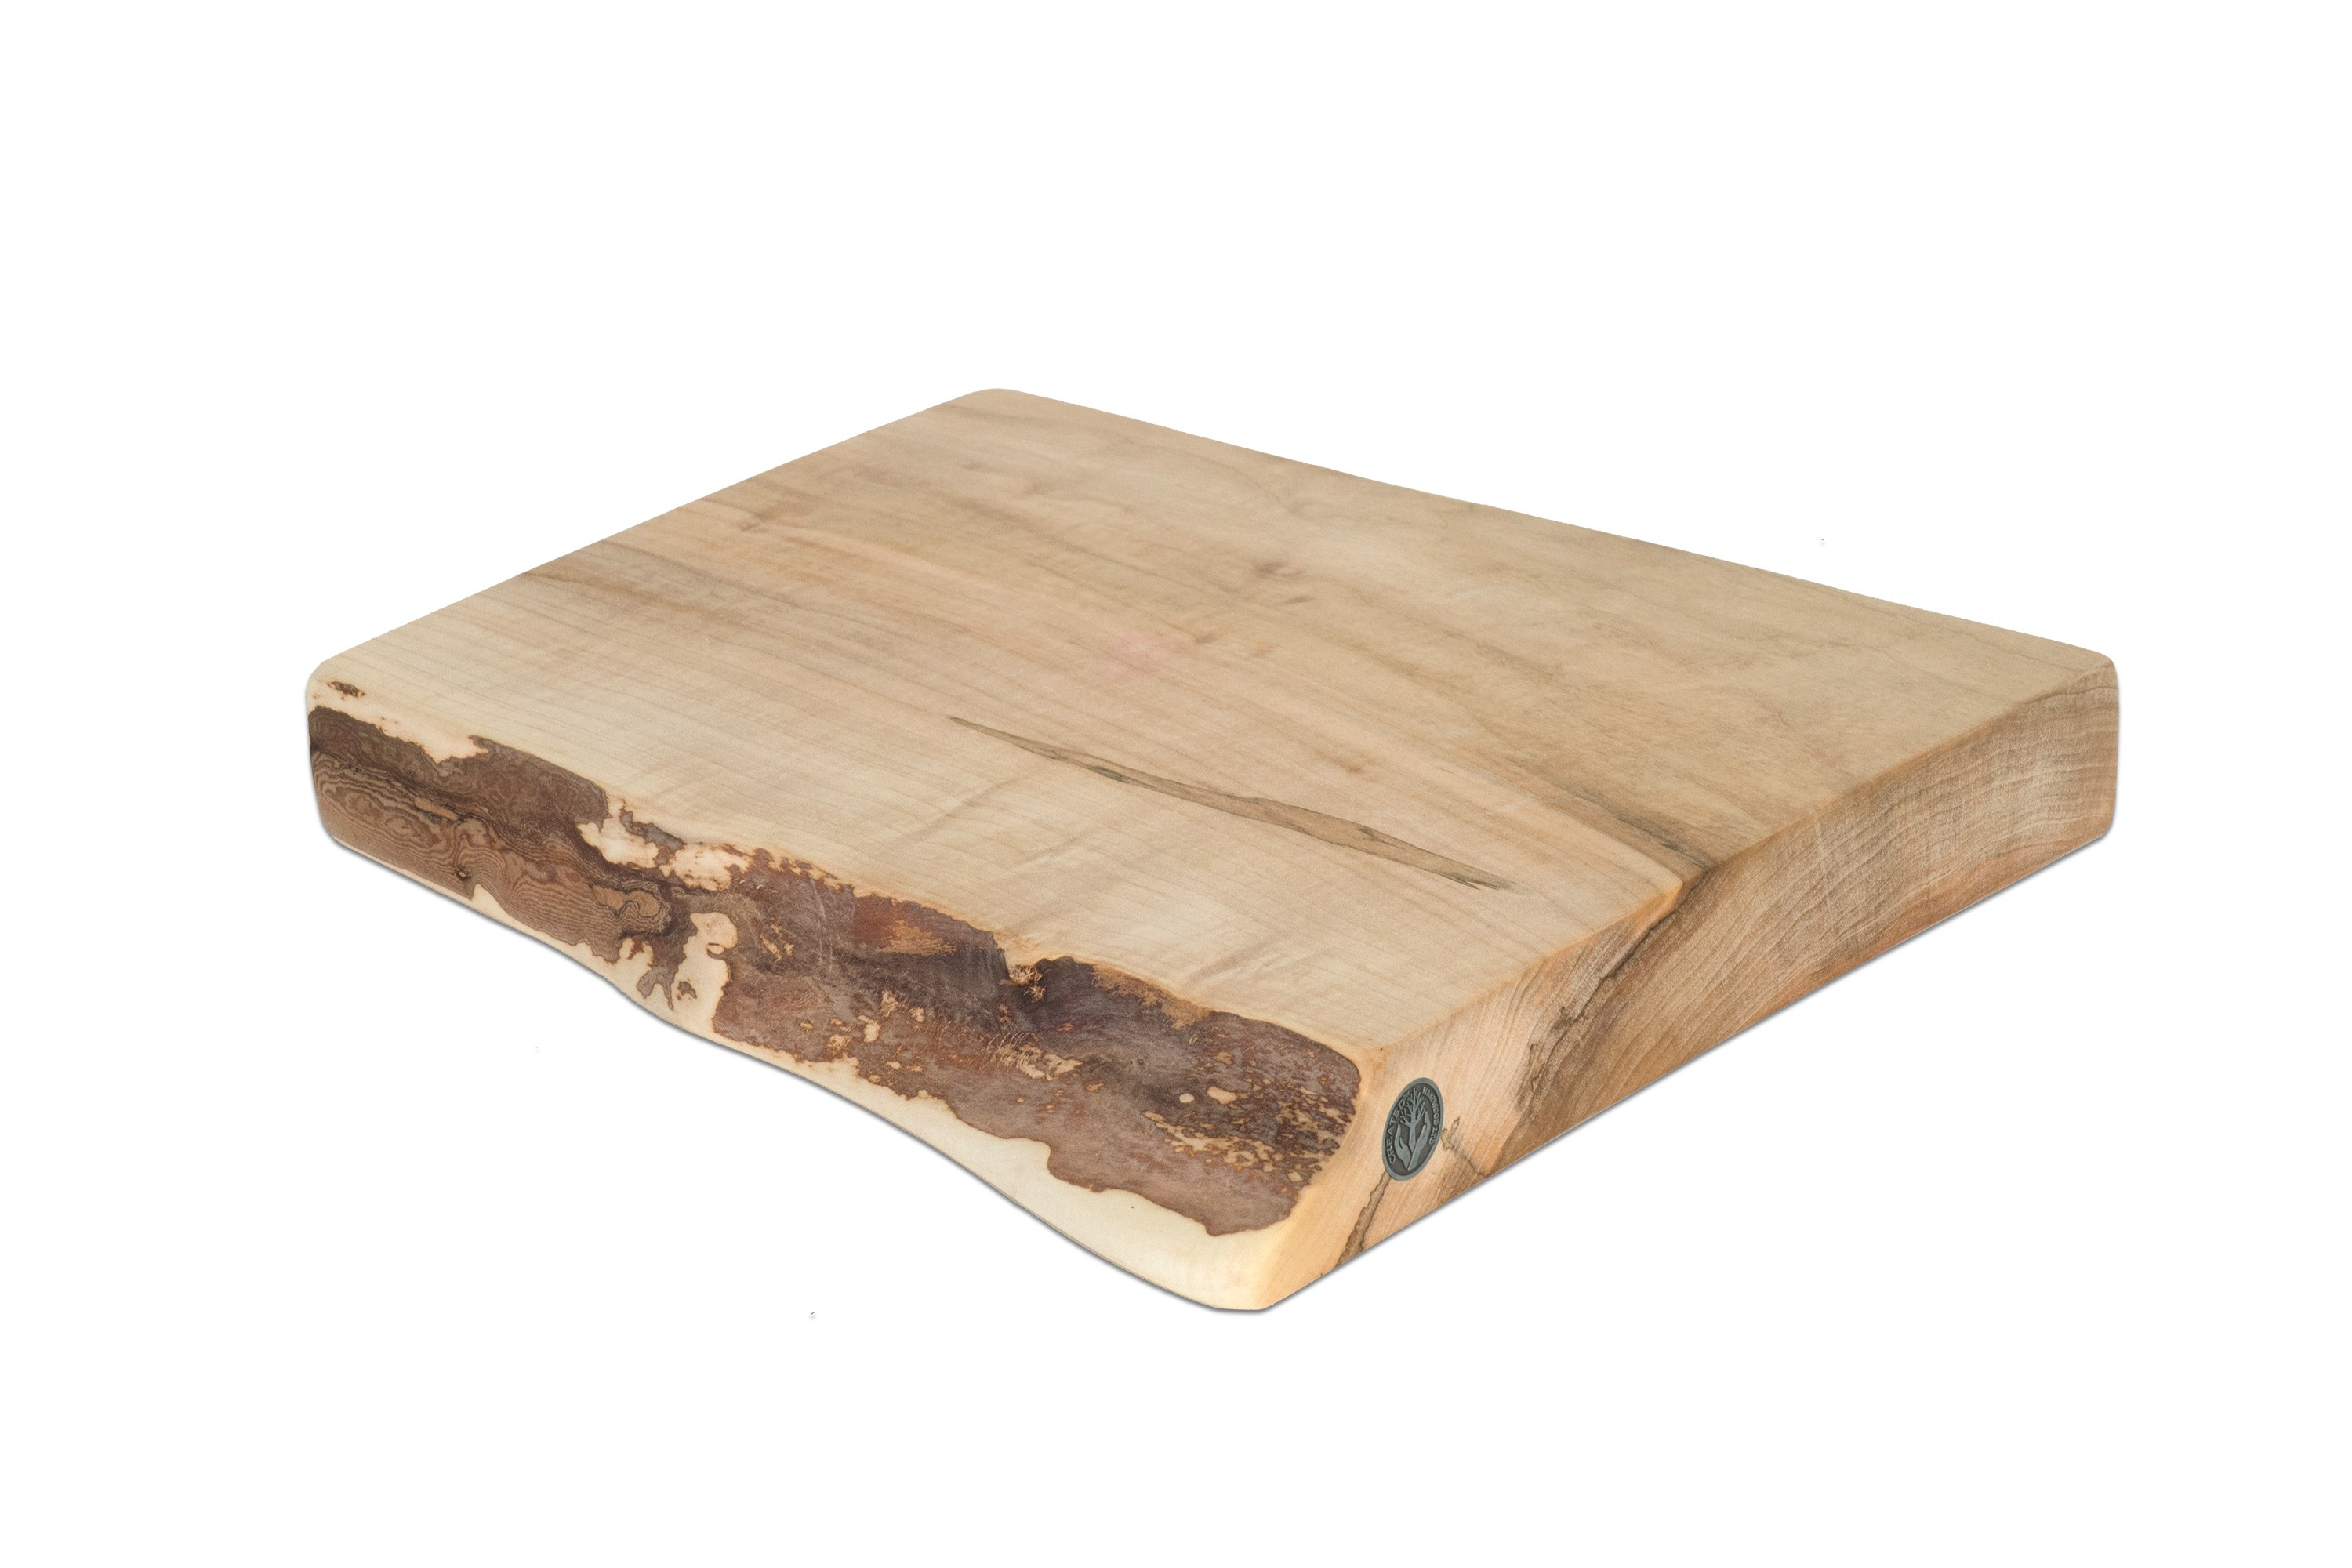 Live Edge Maple Cutting Board #052 - 15